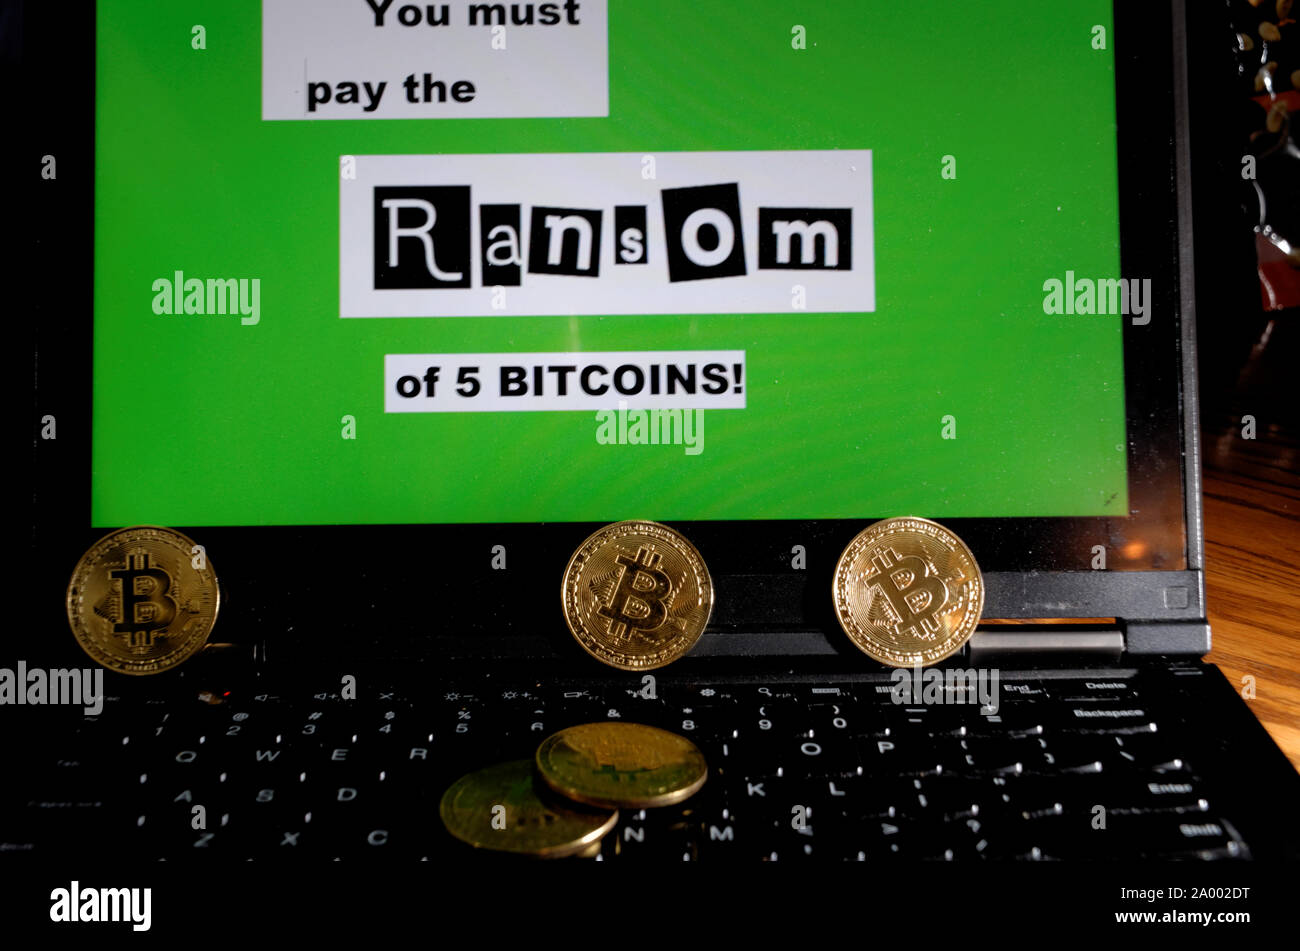 """Five """"bitcoins"""" on a laptop displaying a ransom message demanding 5 bitcoins. Stock Photo"""